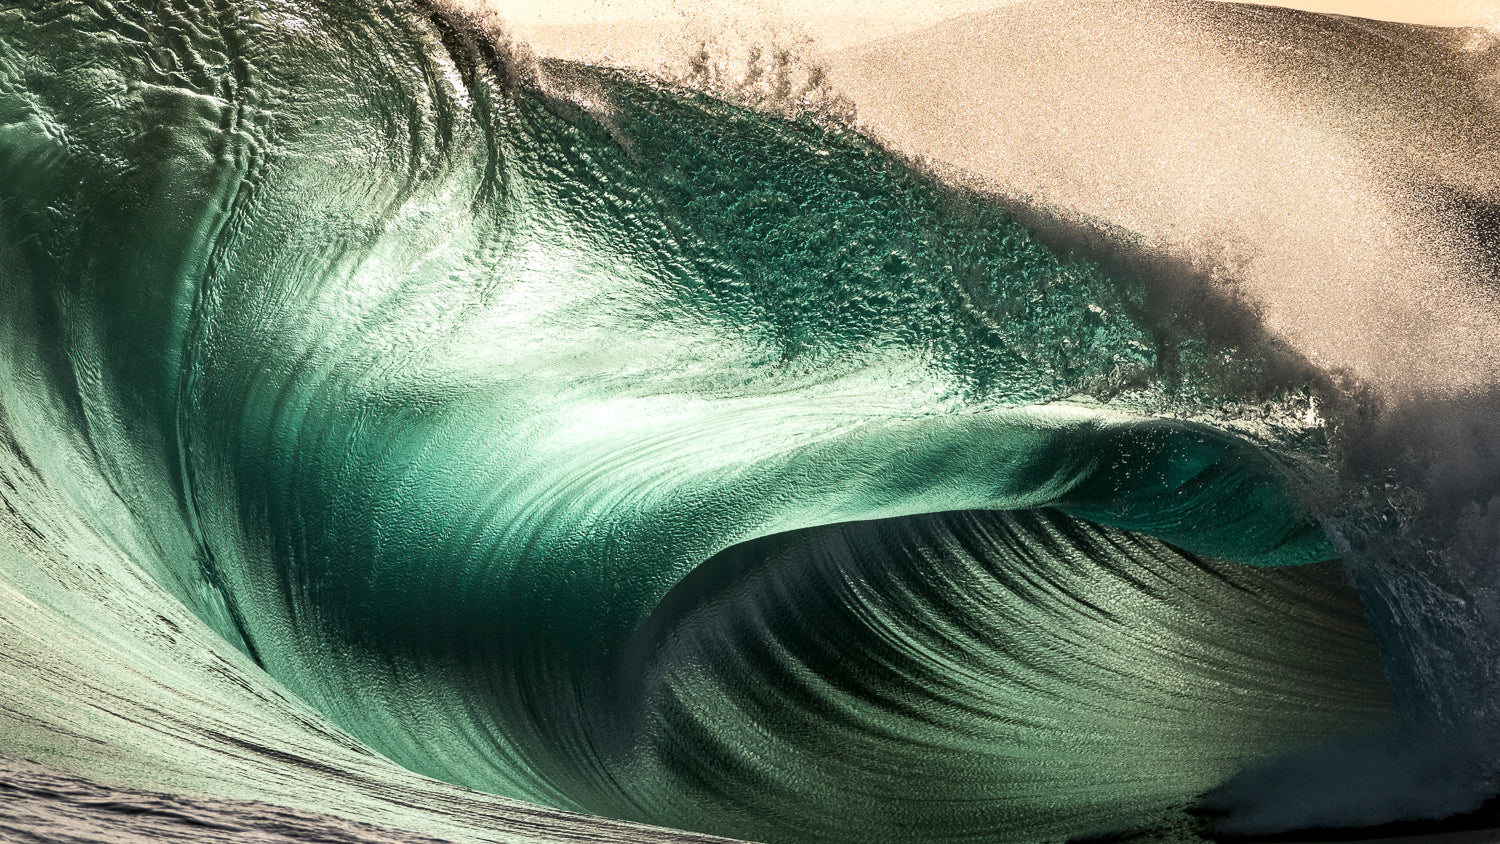 What To Expect At The Upcoming Bluey's Experience With Warren Keelan & Russell Ord